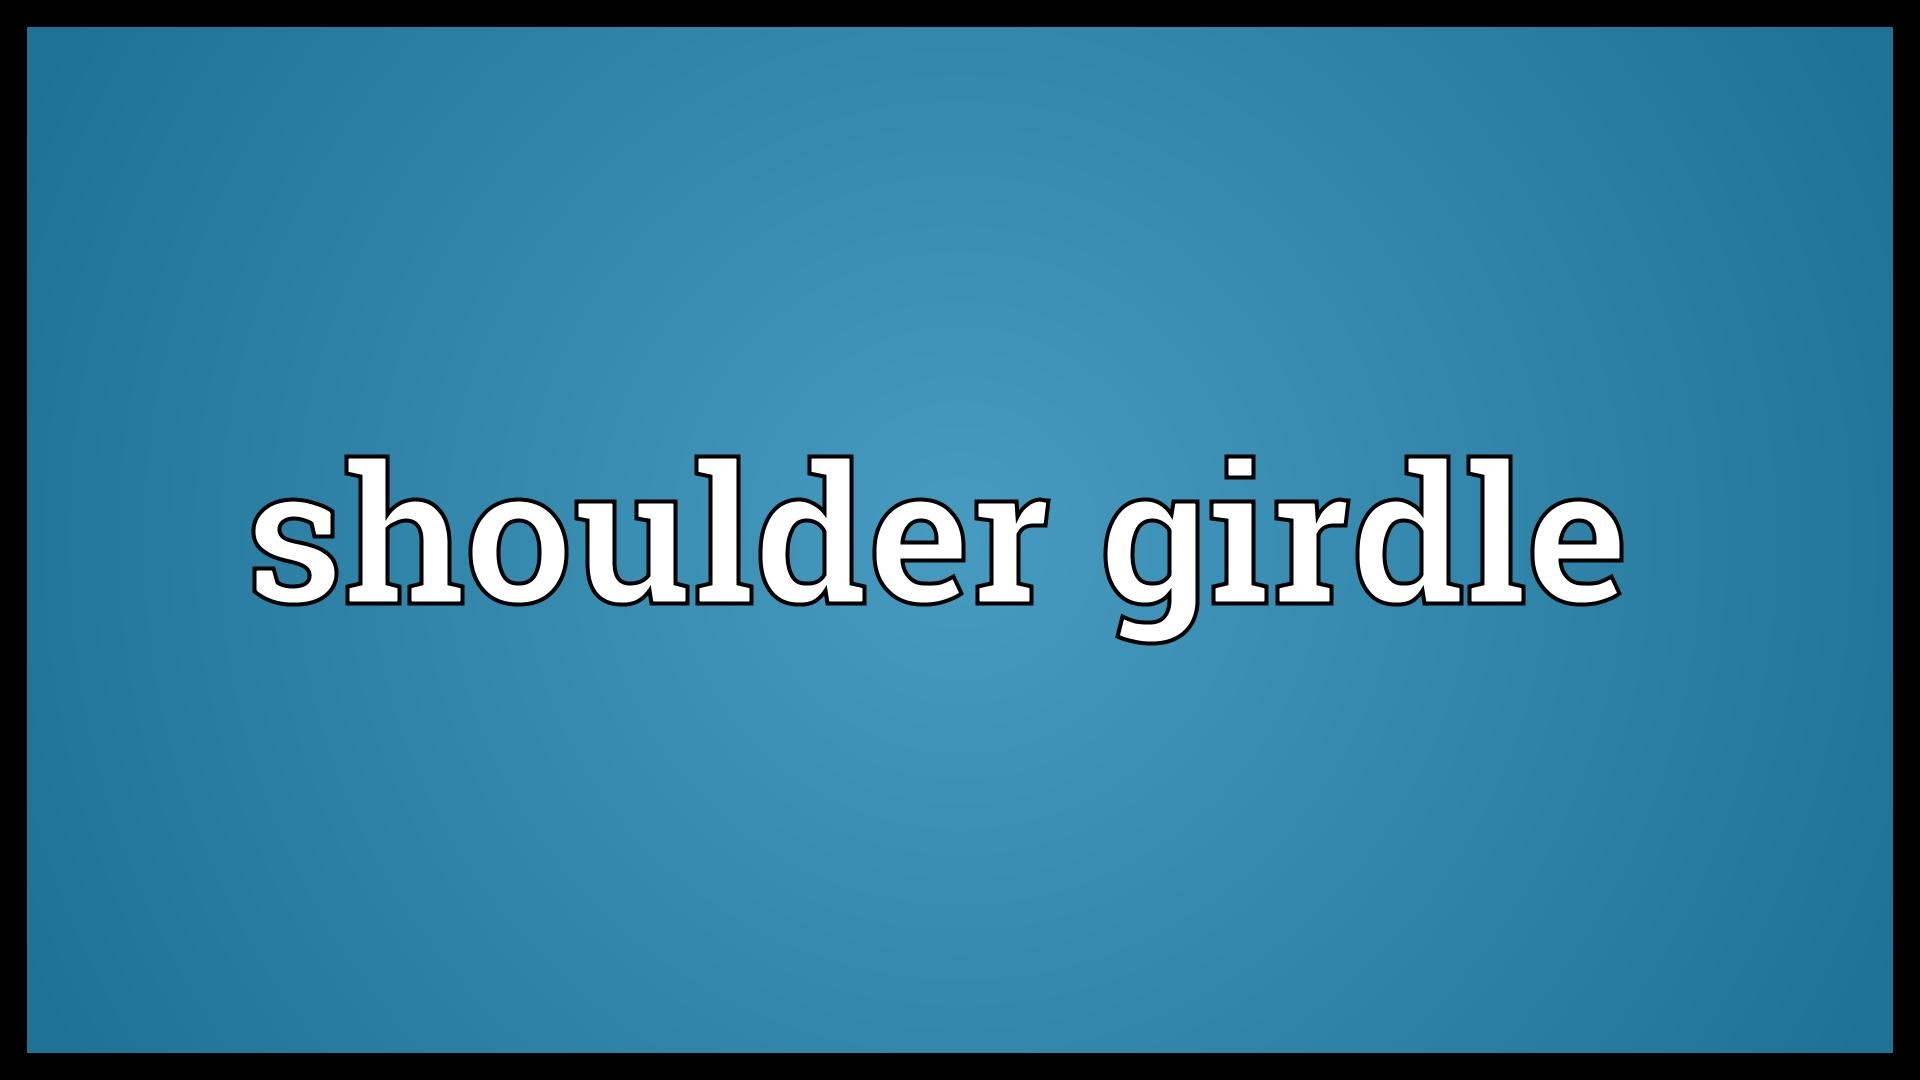 Shoulder girdle Meaning.